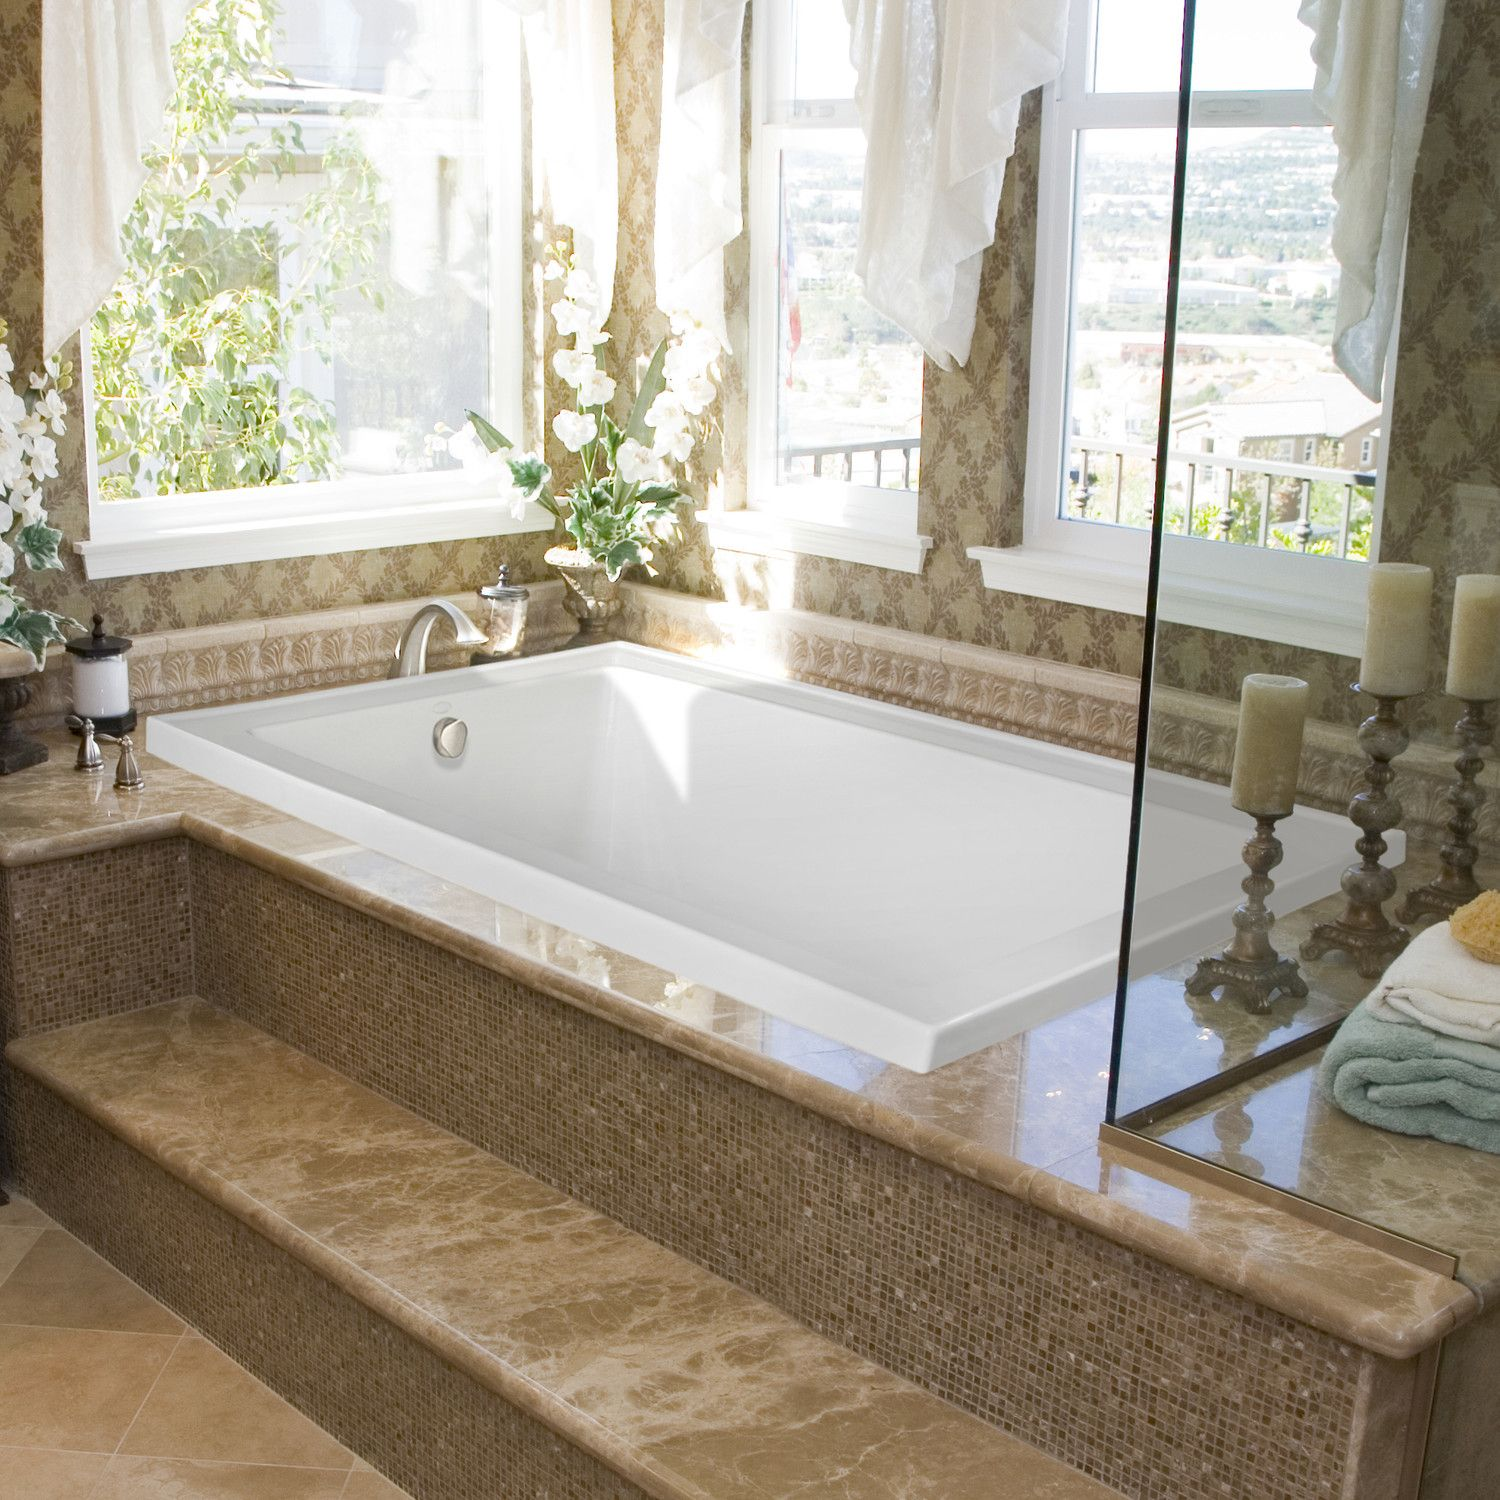 Upgrade Your Bathroom With Whirlpool Tub Mosaic Tile Tub Surround And Whirlpool Tub With Pillar